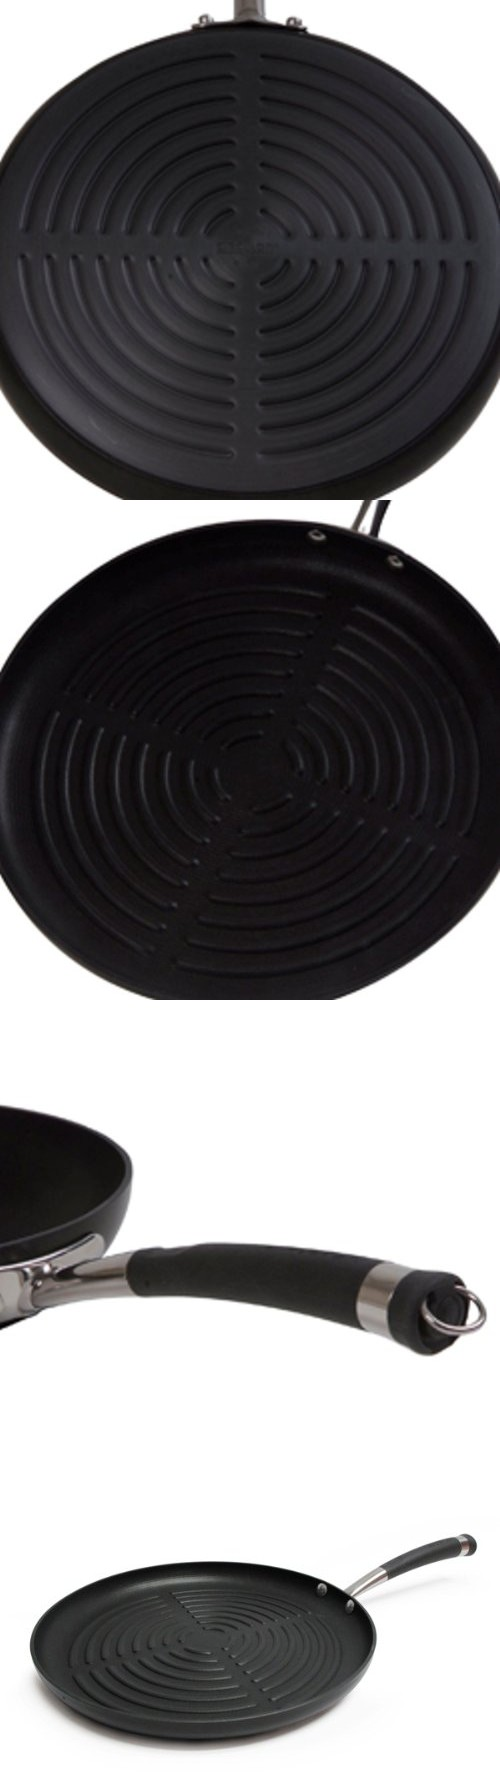 Circulon Contempo Hard Anodized Nonstick 12 Inch Round Grill Pan Grill Pan Grilling Pan